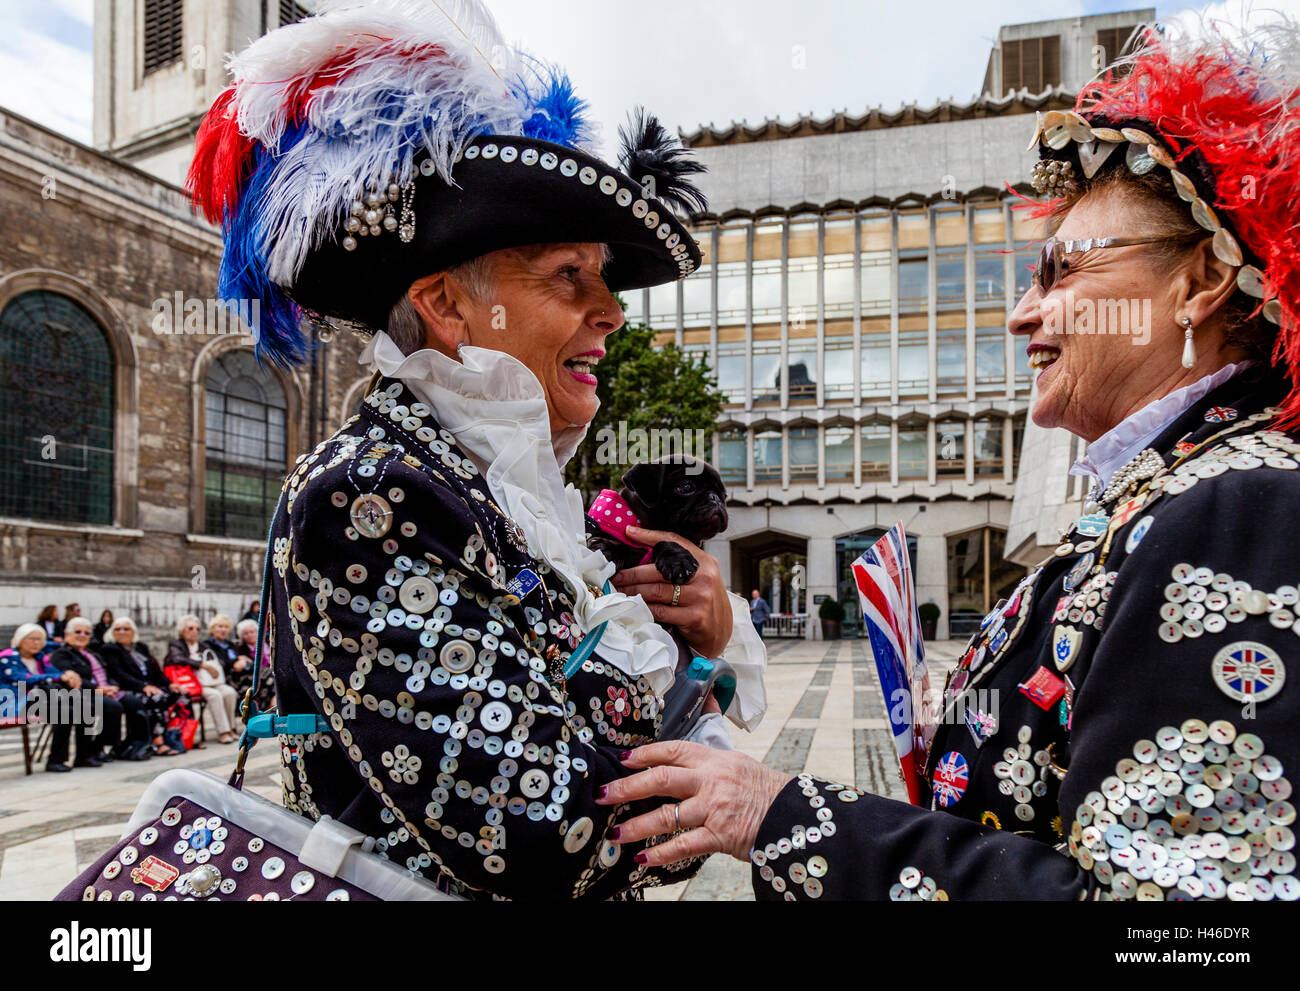 The Pearly Kings and Queens' Harvest Festival, Held Annually At The Guildhall Yard, London, England - Stock Image